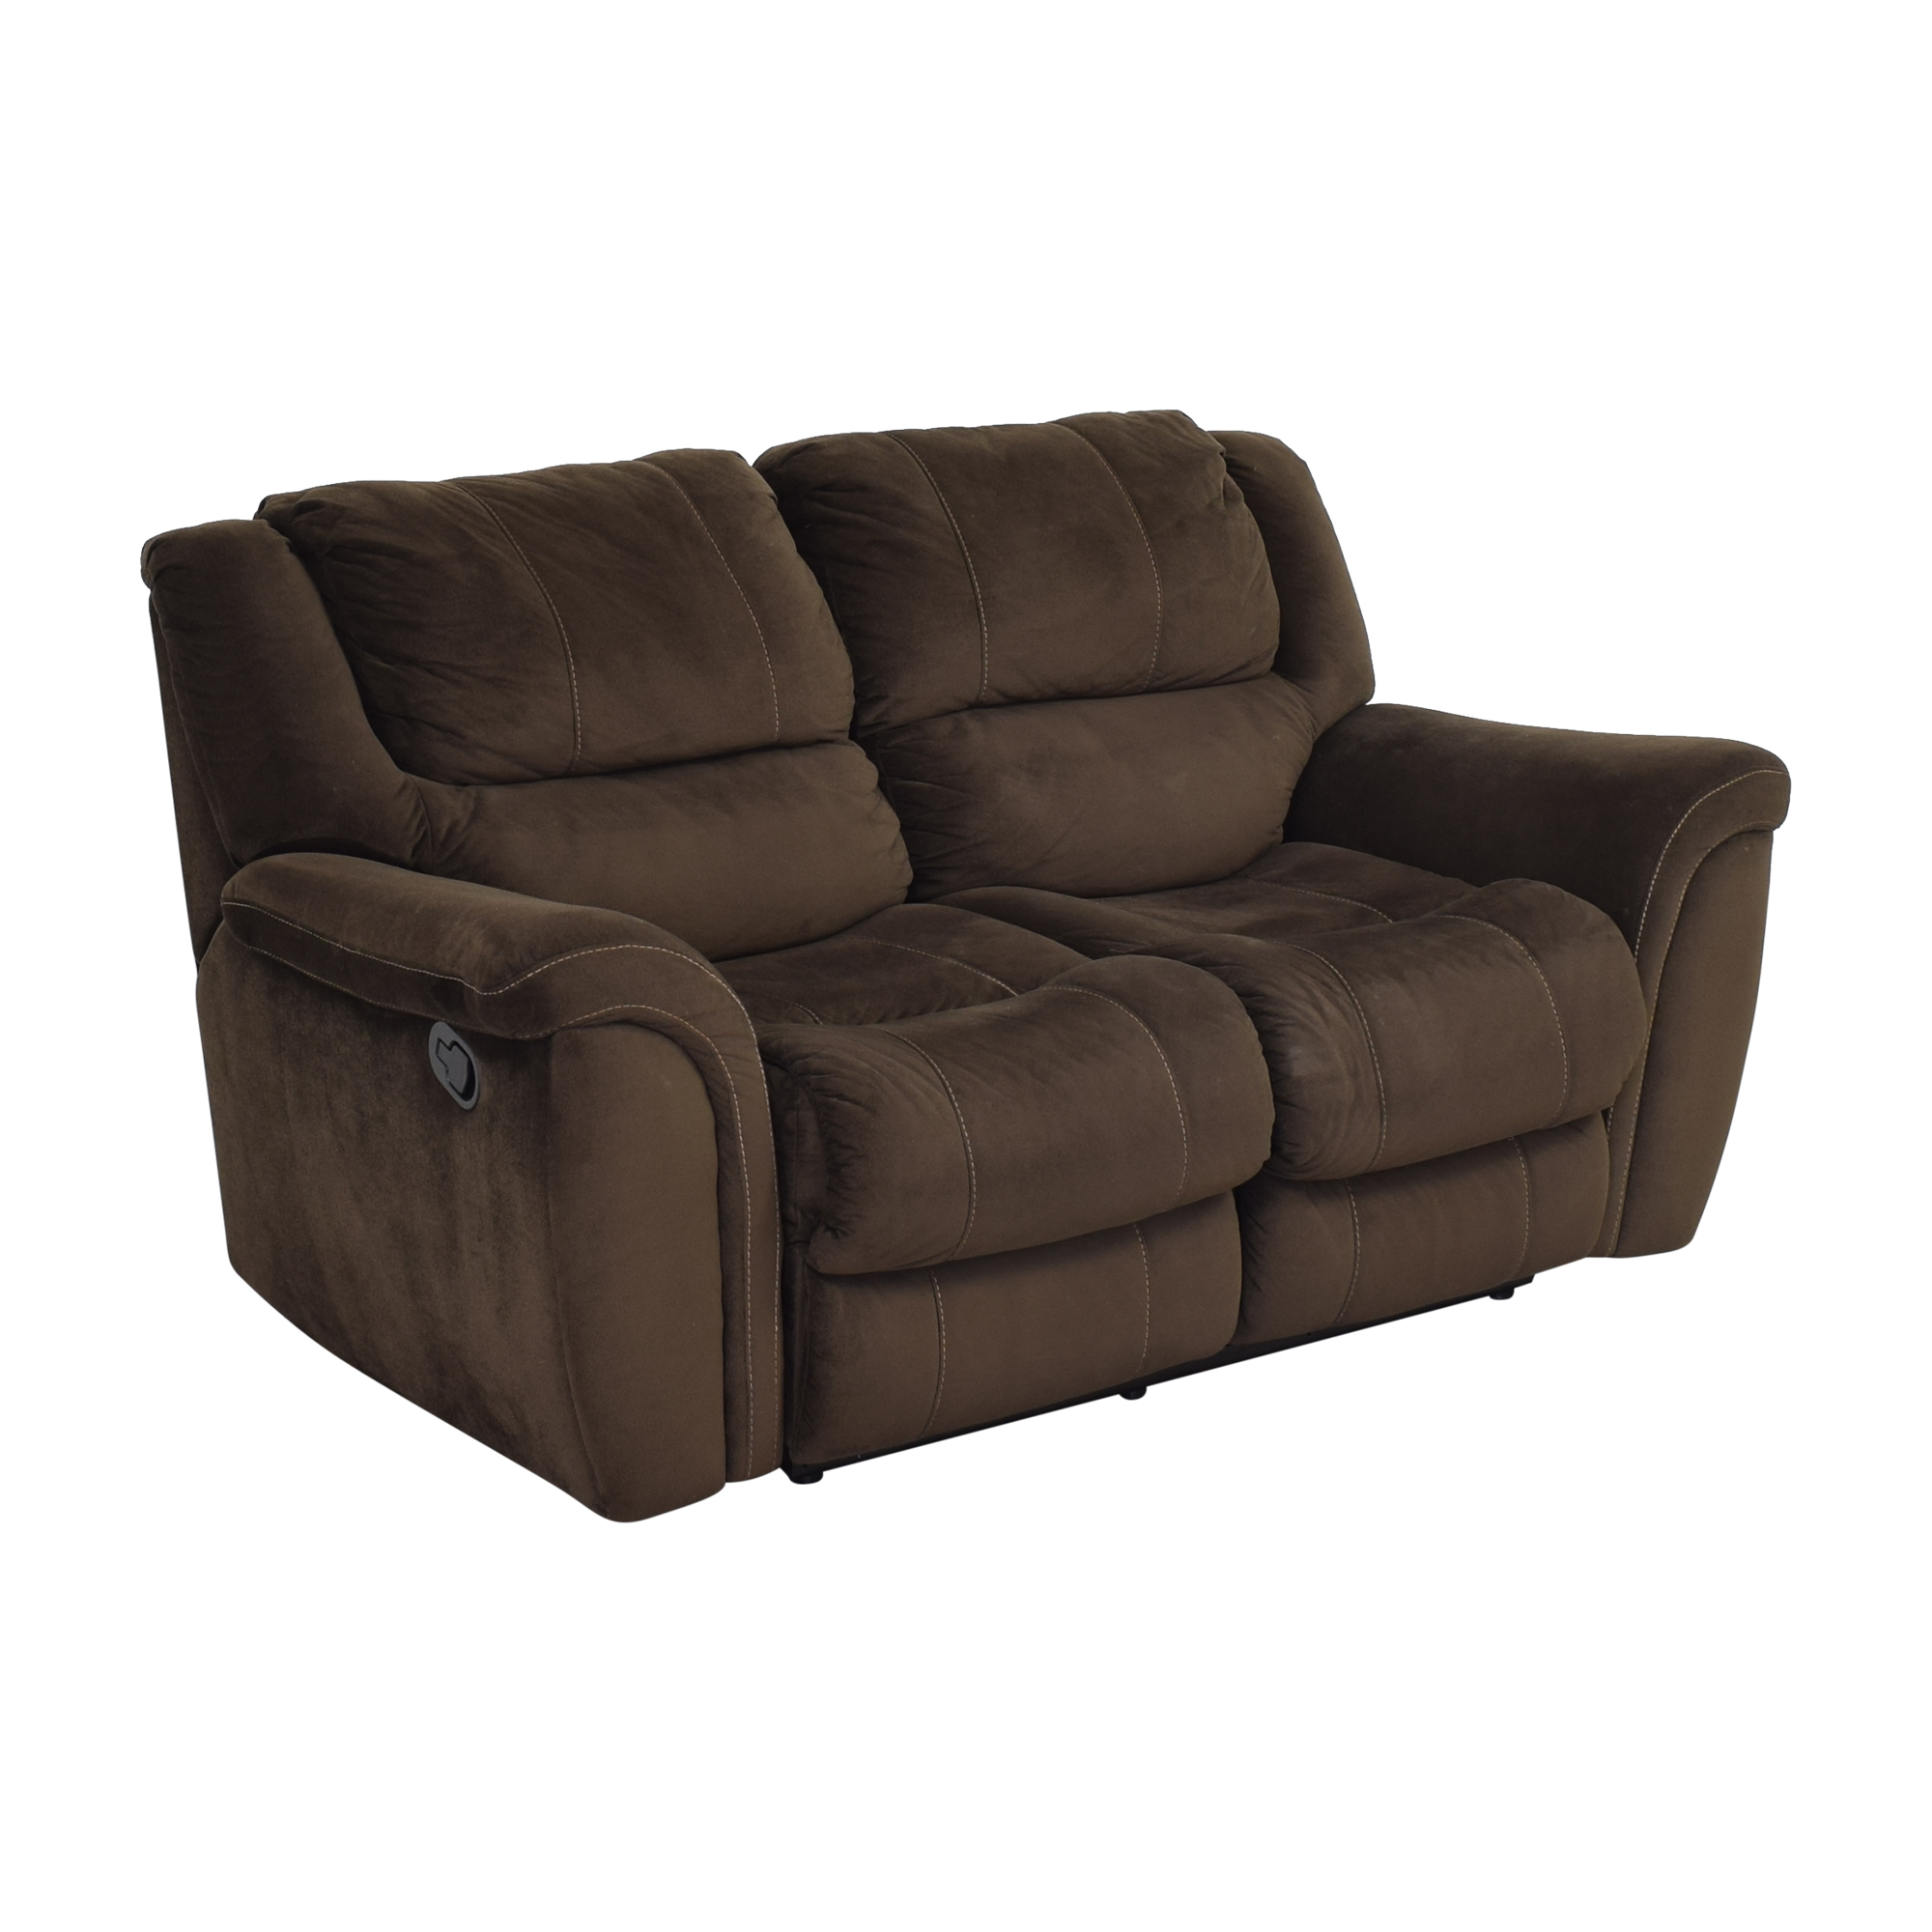 buy Raymour & Flanigan Raymour & Flanigan Double Recliner Loveseat online